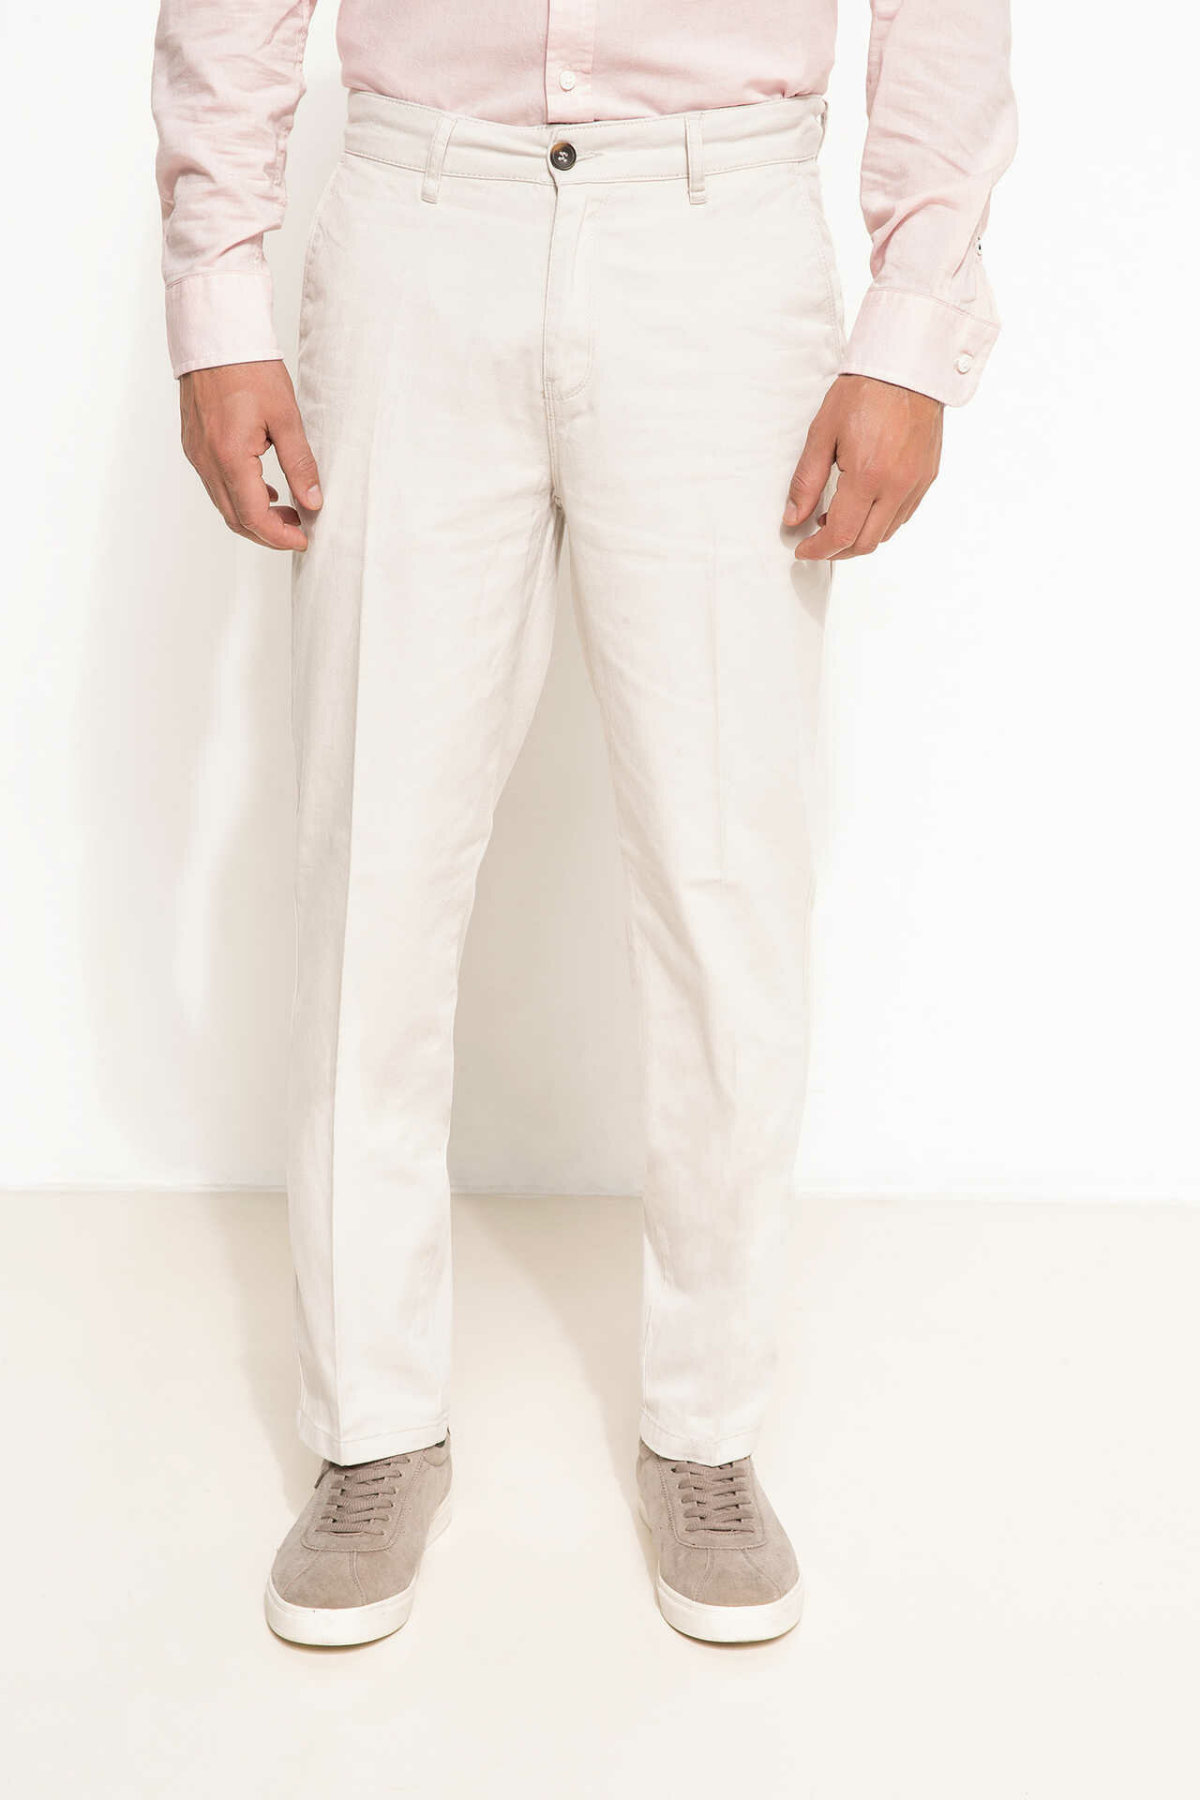 DeFacto Men Solid Fashion Casual Pants Straight Leisure Trousers Straight White Elastic For Men's Cotton Pant  -G6023AZ17SP